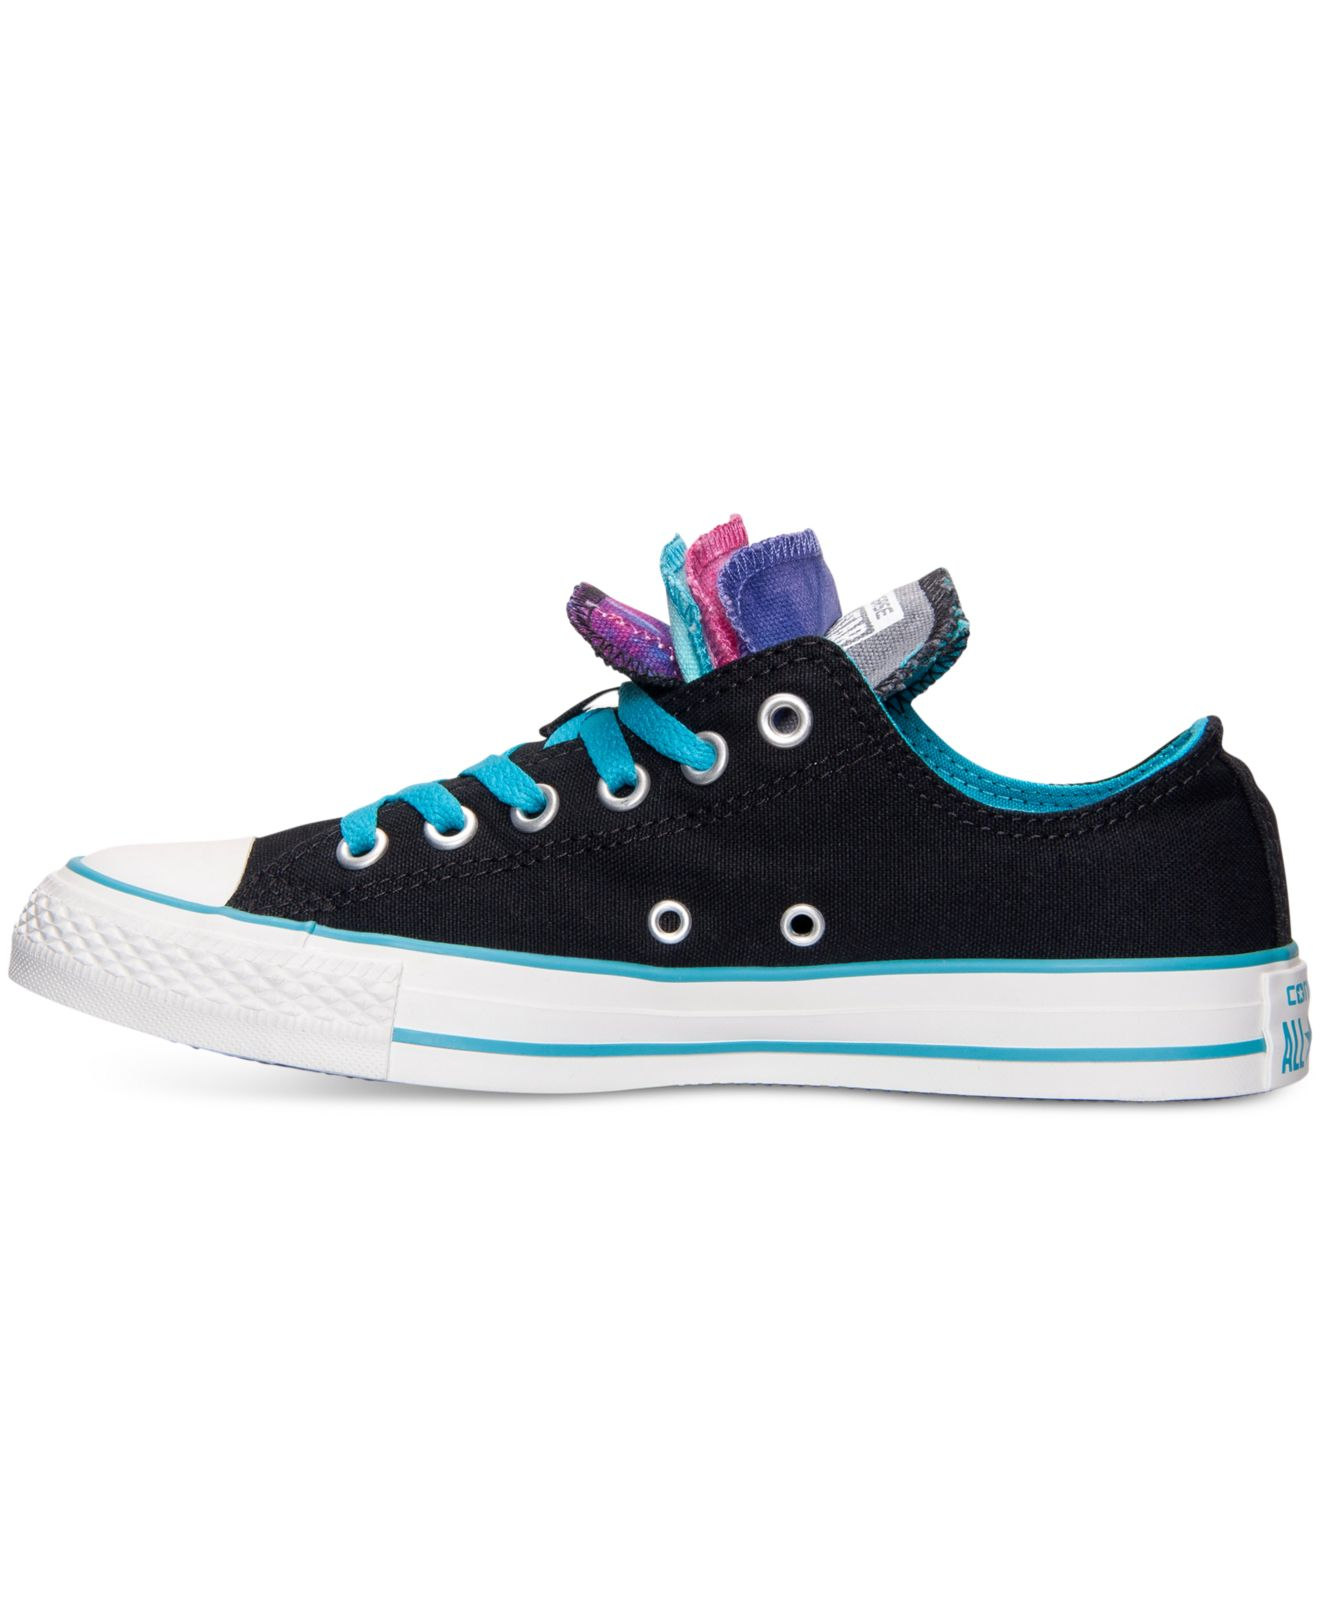 b3a524e0ef21 Lyst - Converse Women S Chuck Taylor Ox Multi Tongue Casual Sneakers ...